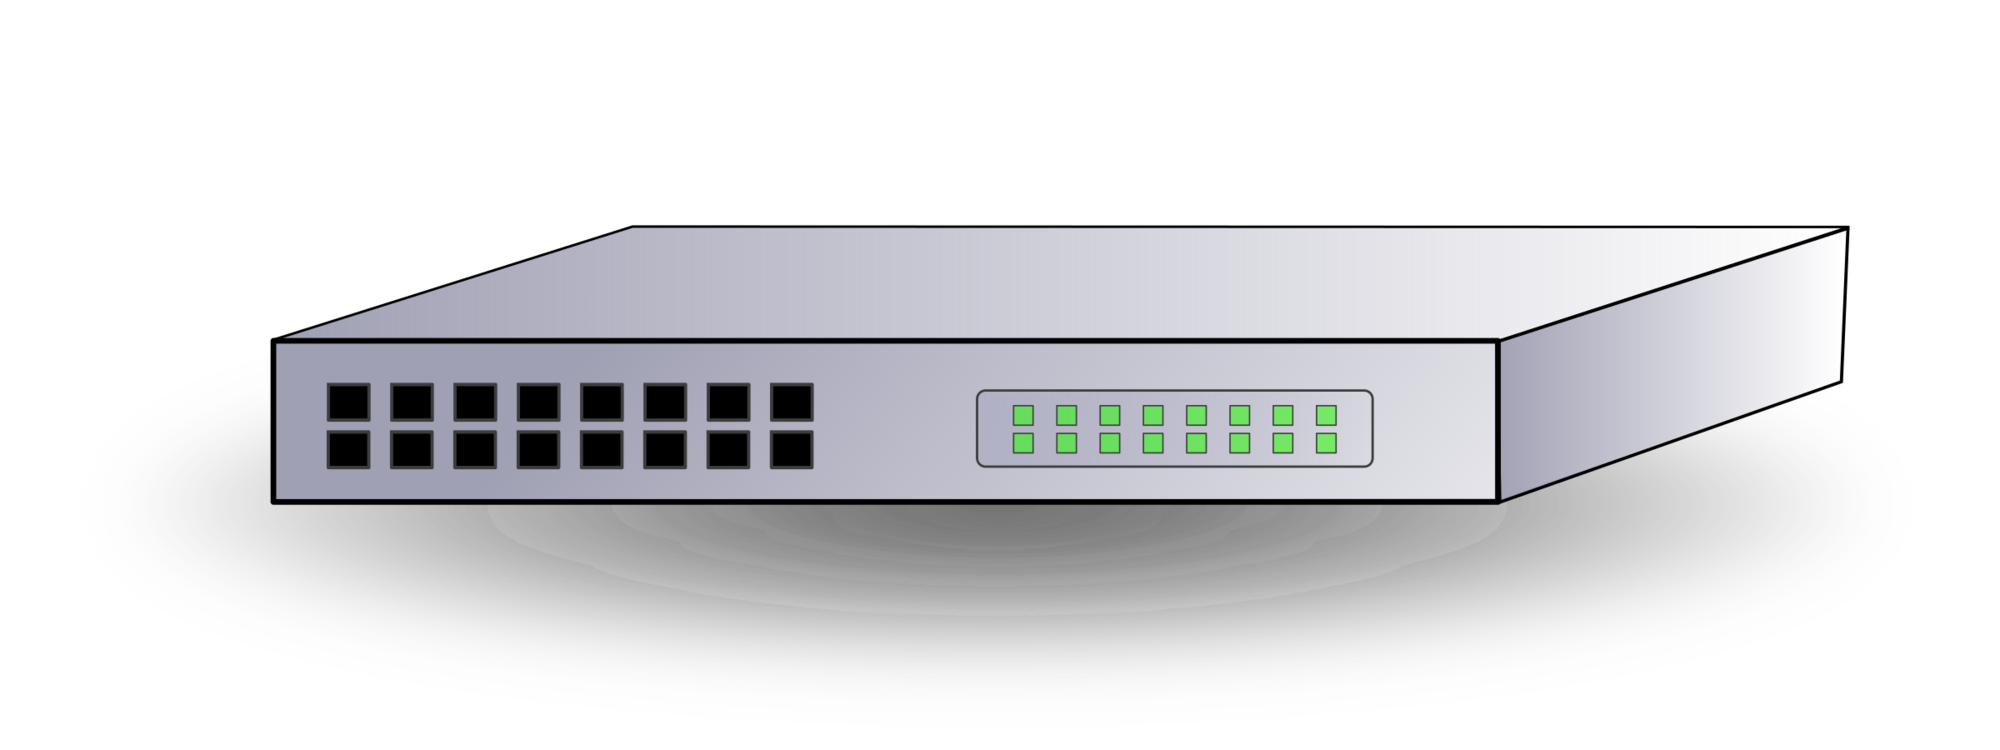 Ethernet switch clipart graphic freeuse Ethernet Hub,Technology,Electronics Accessory Vector Clipart - Free ... graphic freeuse